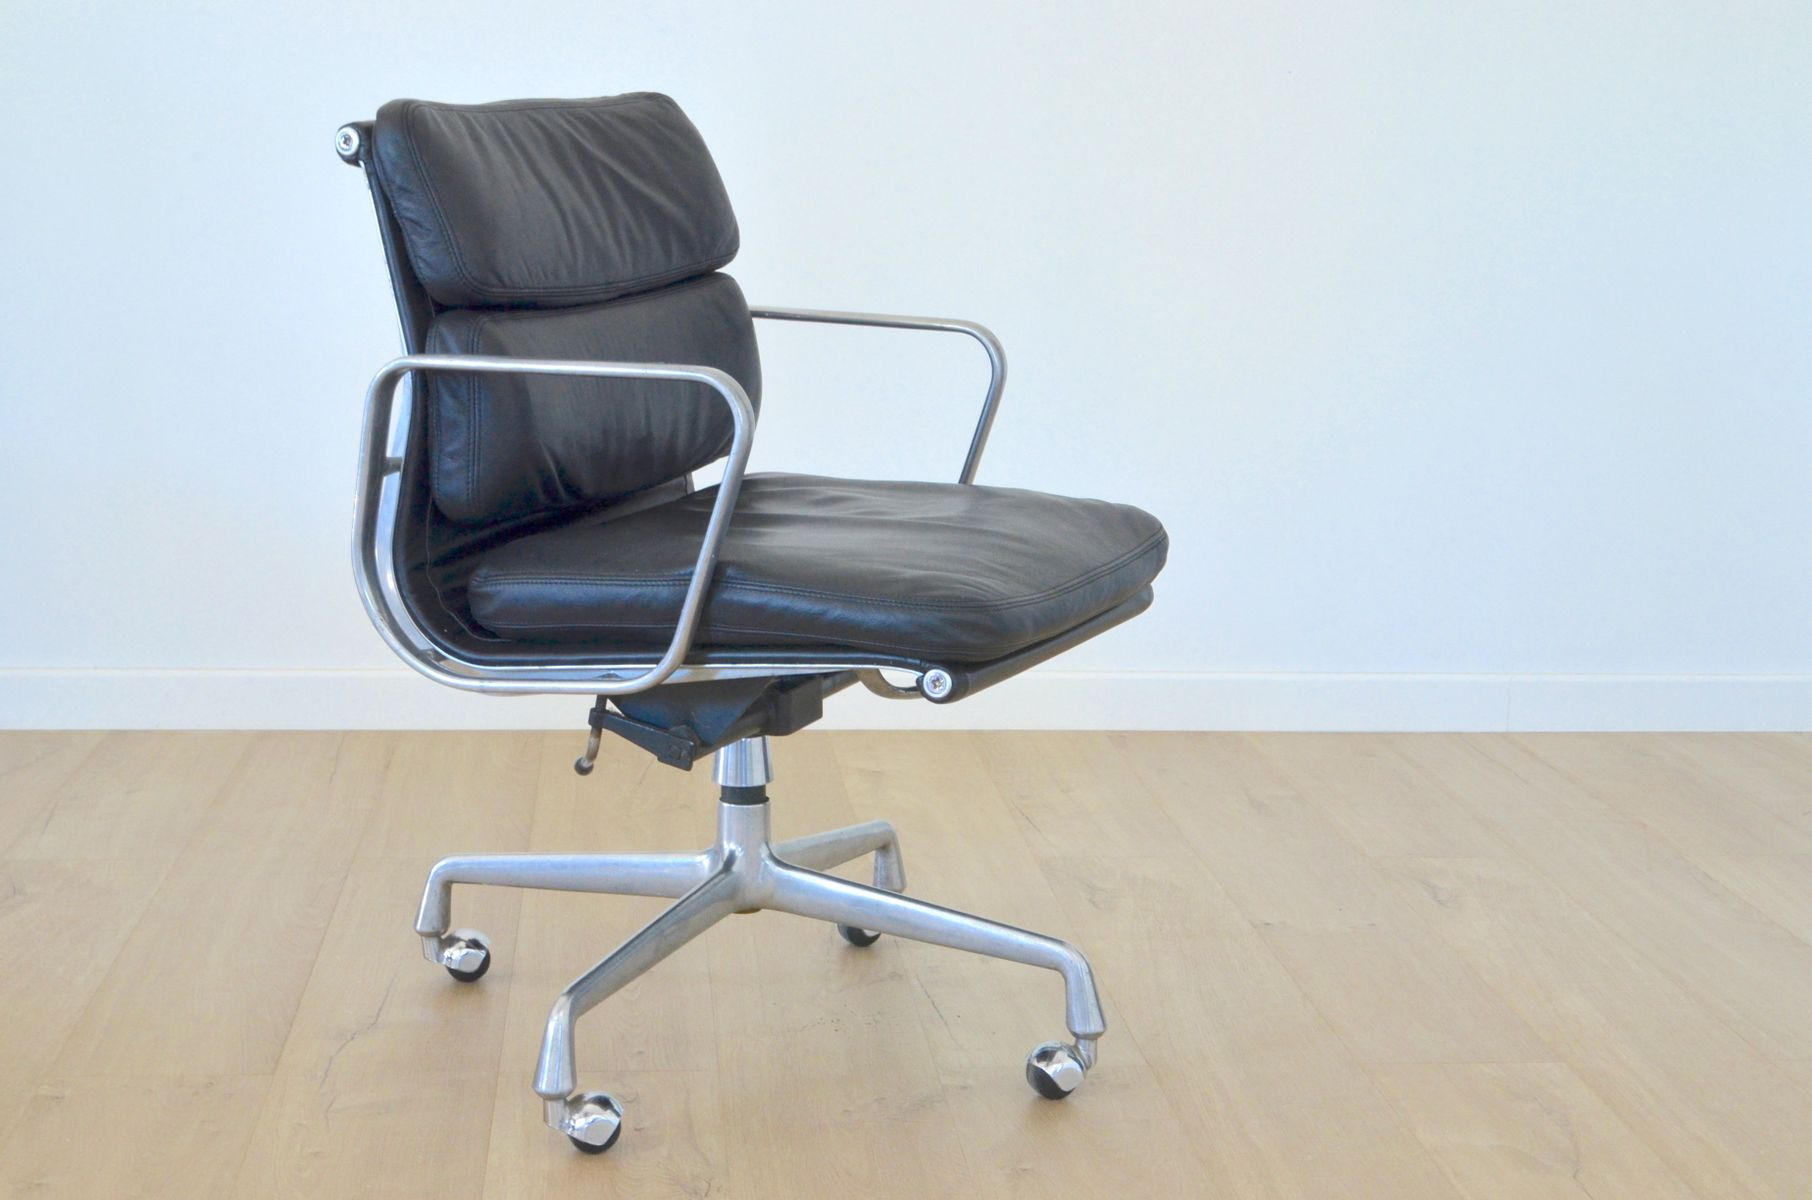 vintage ea217 office chair by charles eames for herman miller for sale